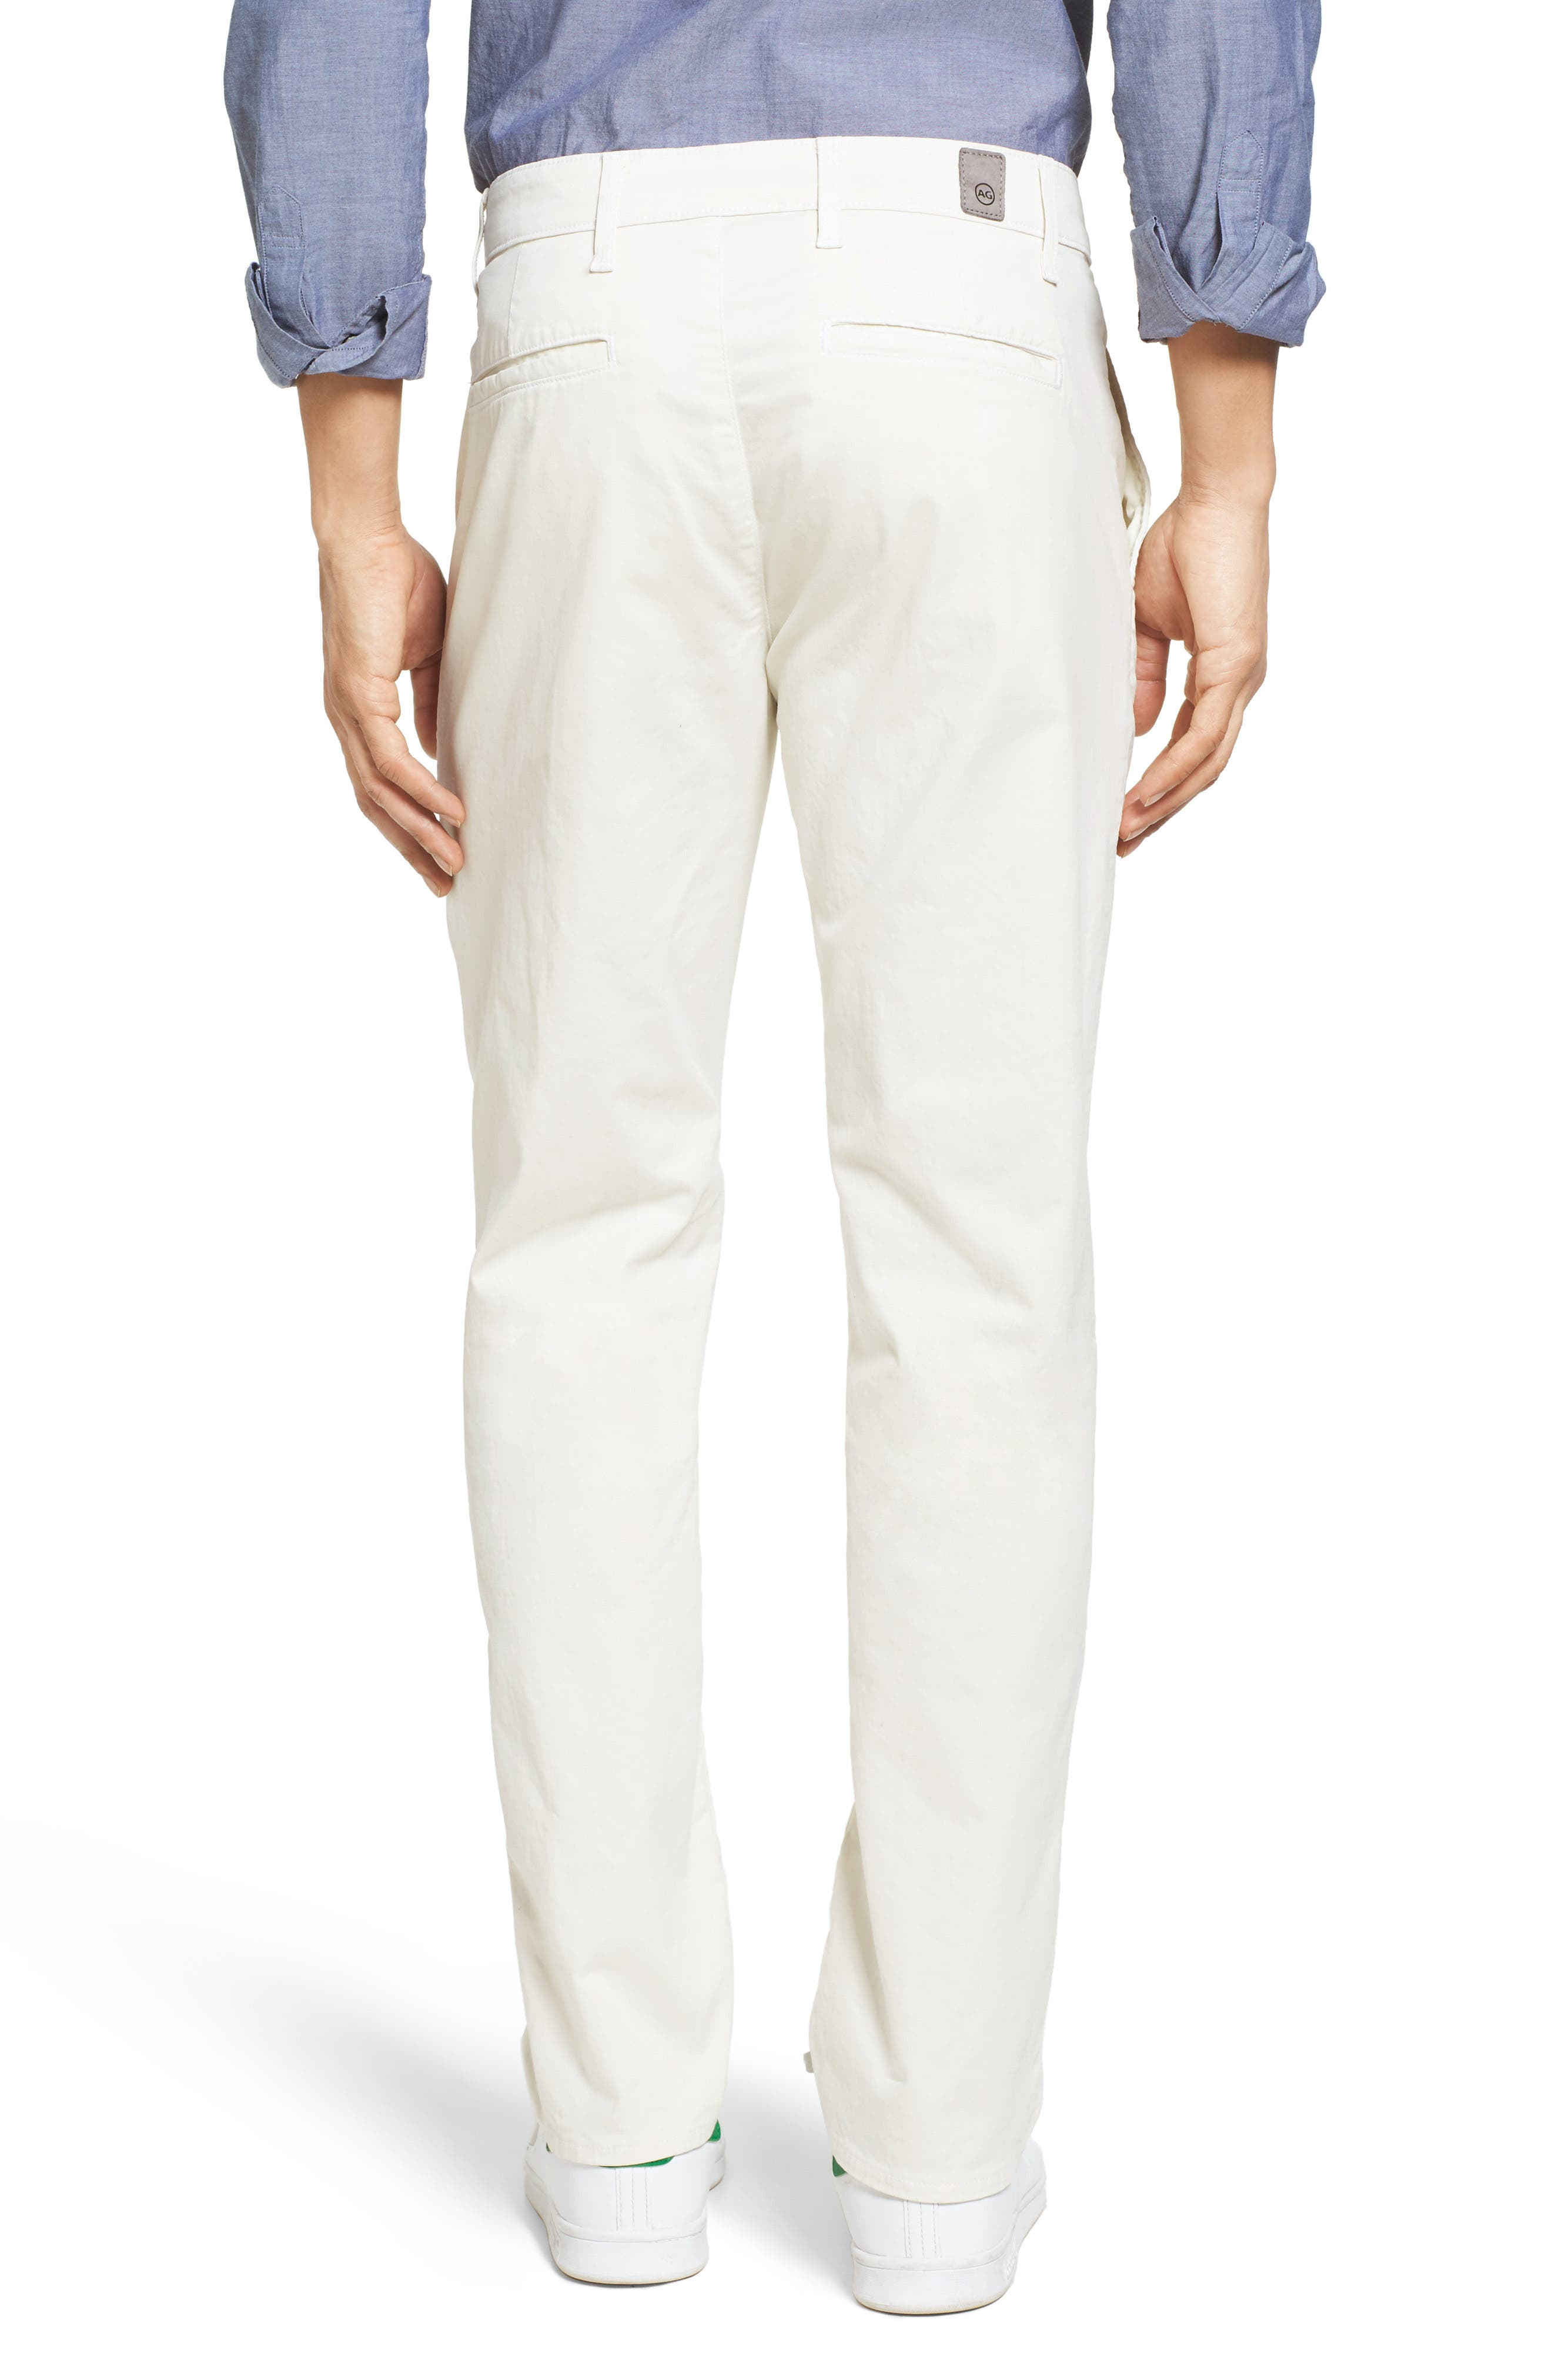 'The Lux' Tailored Straight Leg Chinos,                             Alternate thumbnail 19, color,